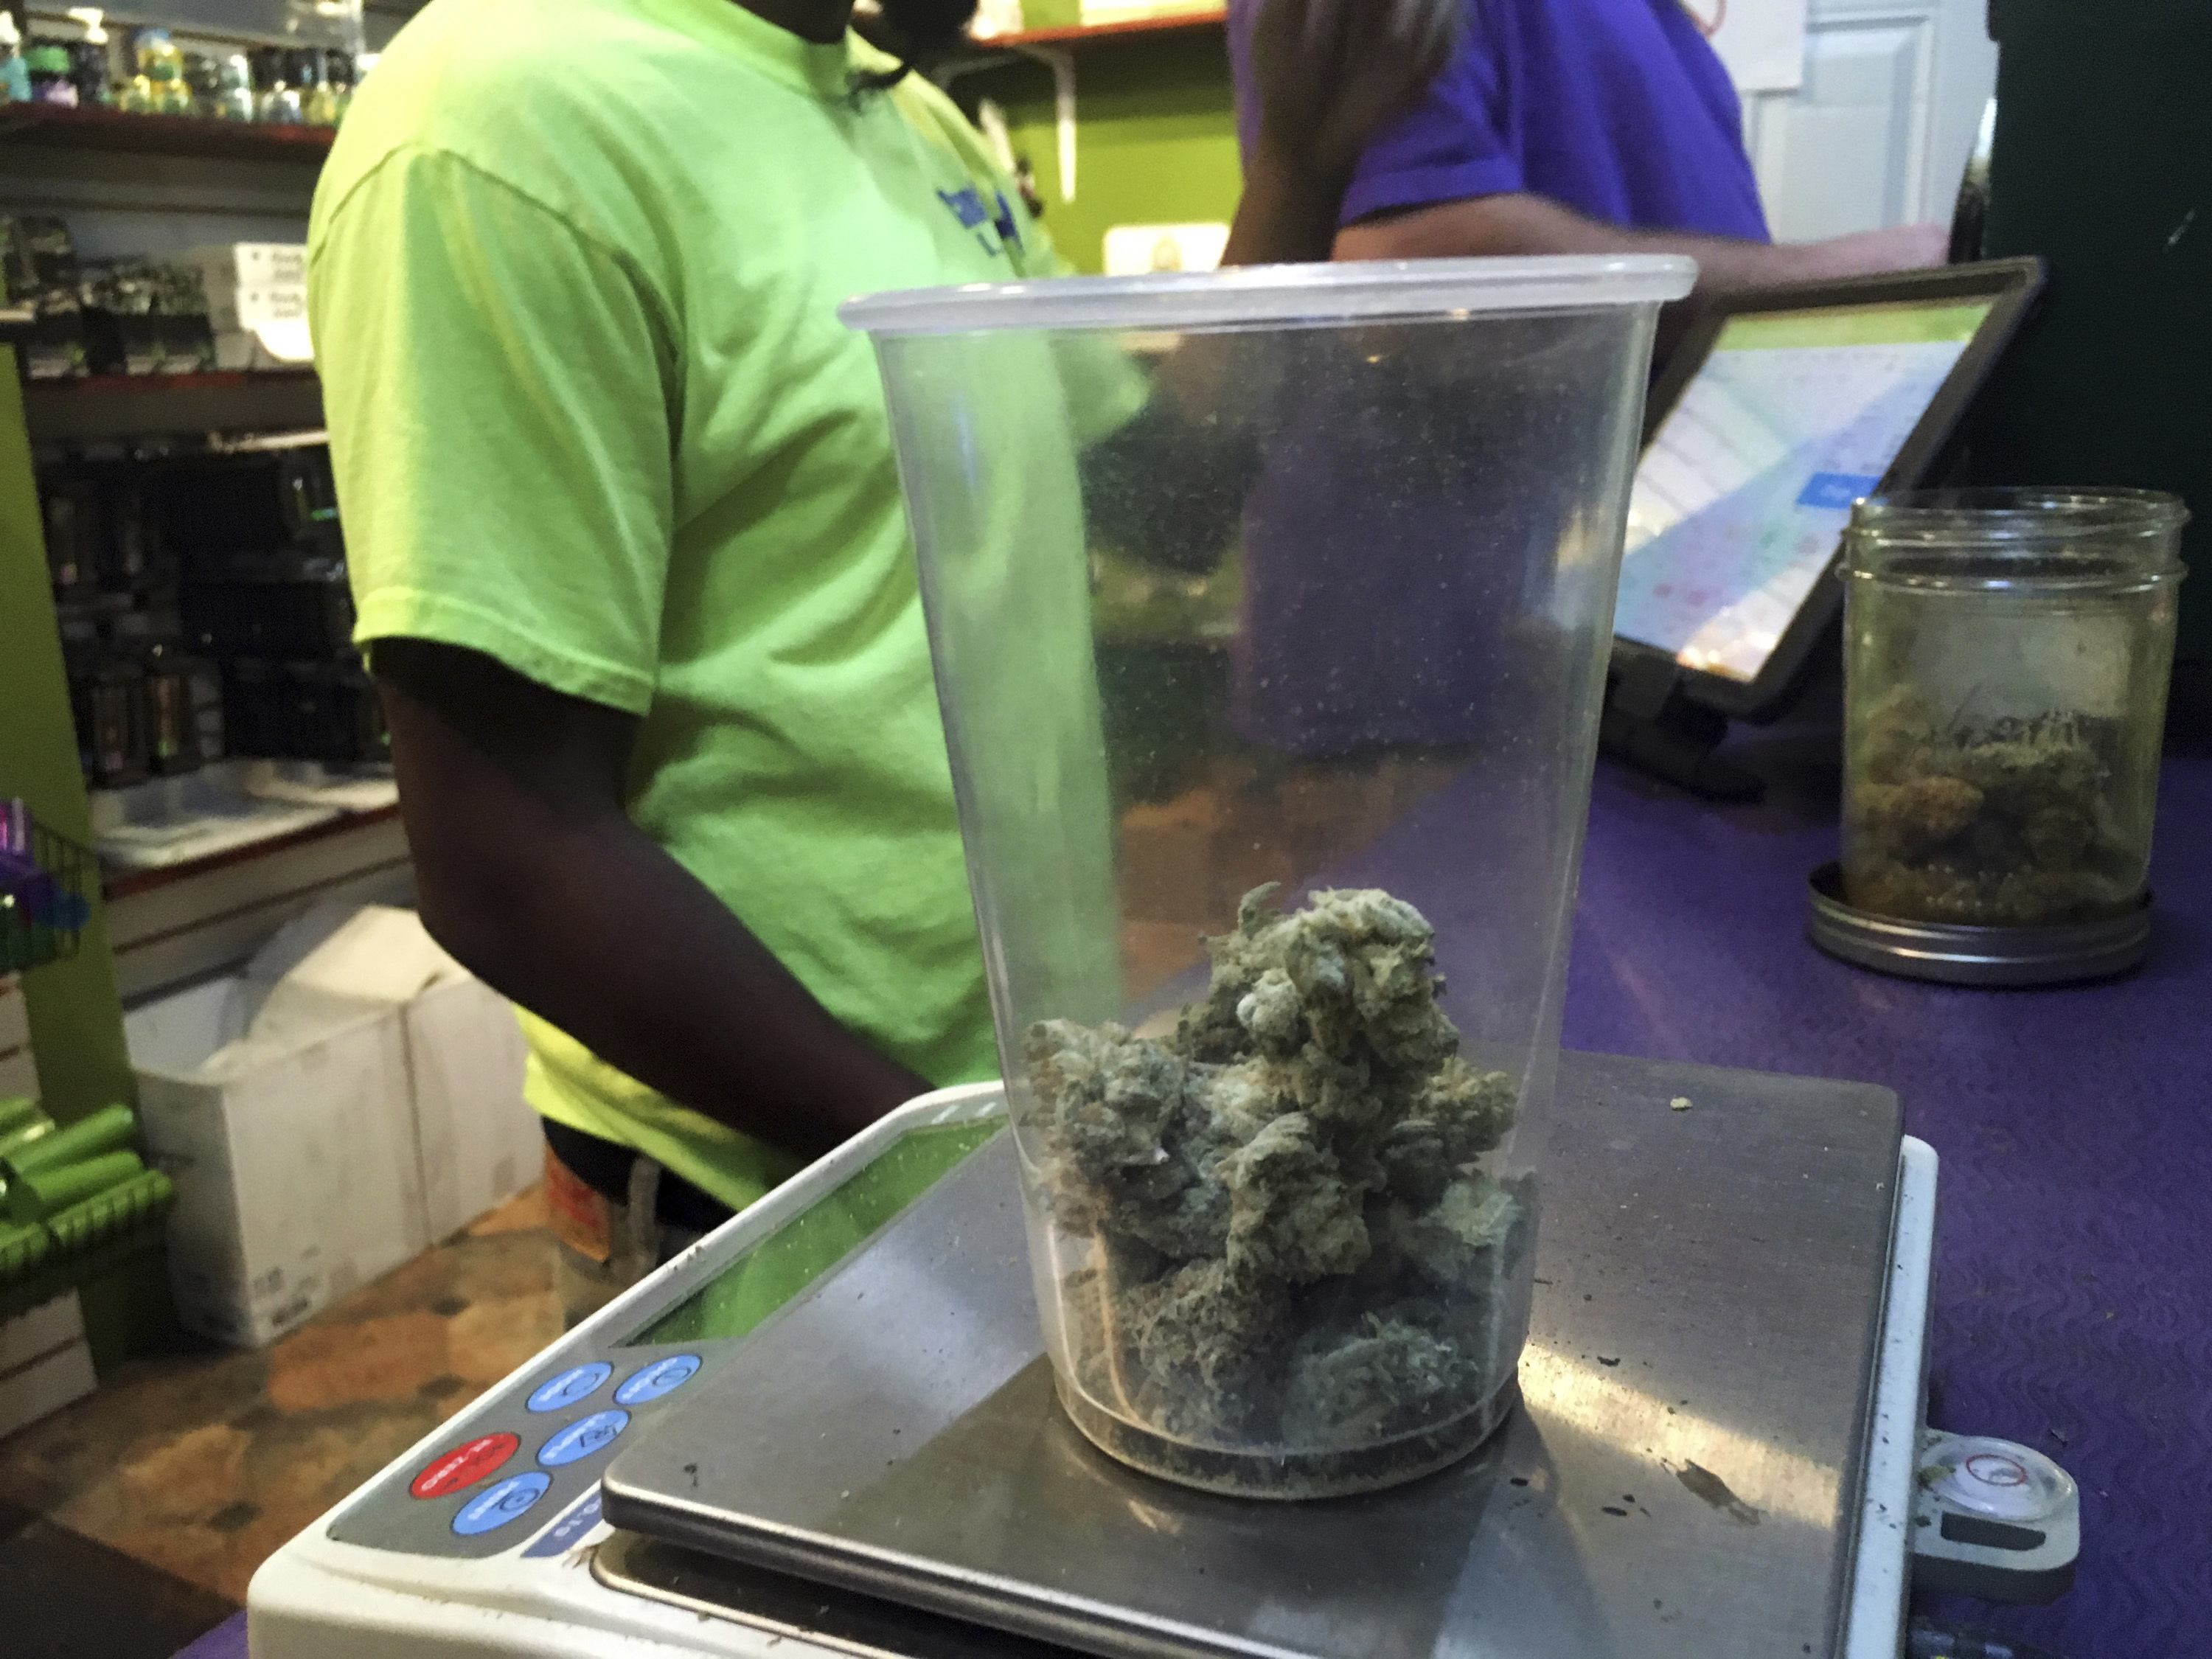 A clear cup filled with marijuana is weighed on scale at a cannabis dispensary.